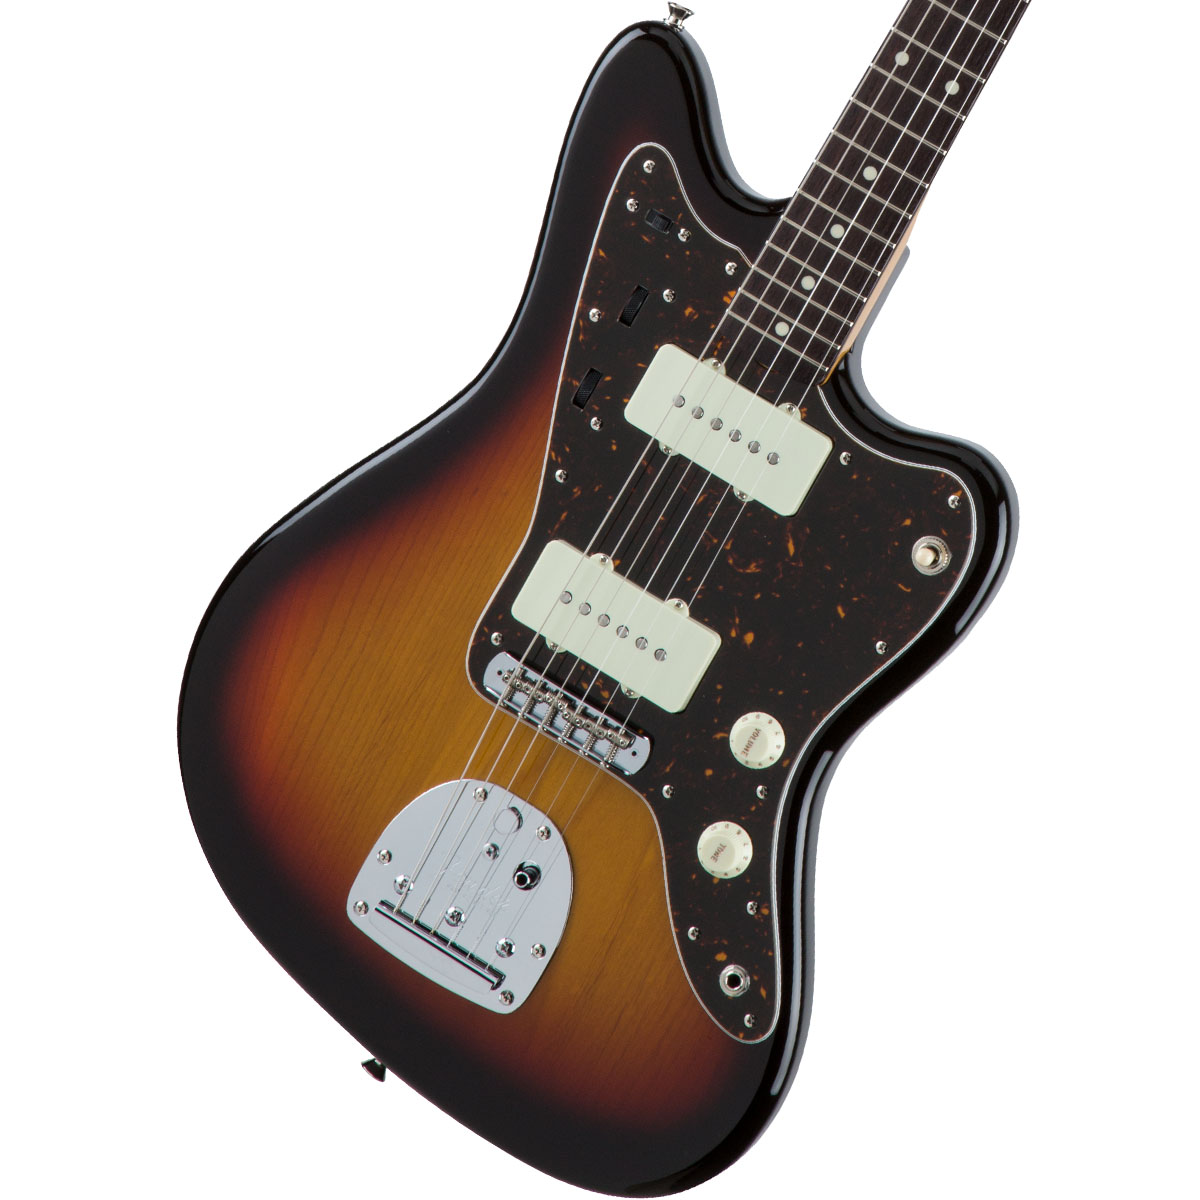 Fender / Made in Japan Traditional 60s Jazzmaster Rosewood Fingerboard 3-Color Sunburst 【YRK】《純正チューナーとピック12枚プレゼント!/+811179700》